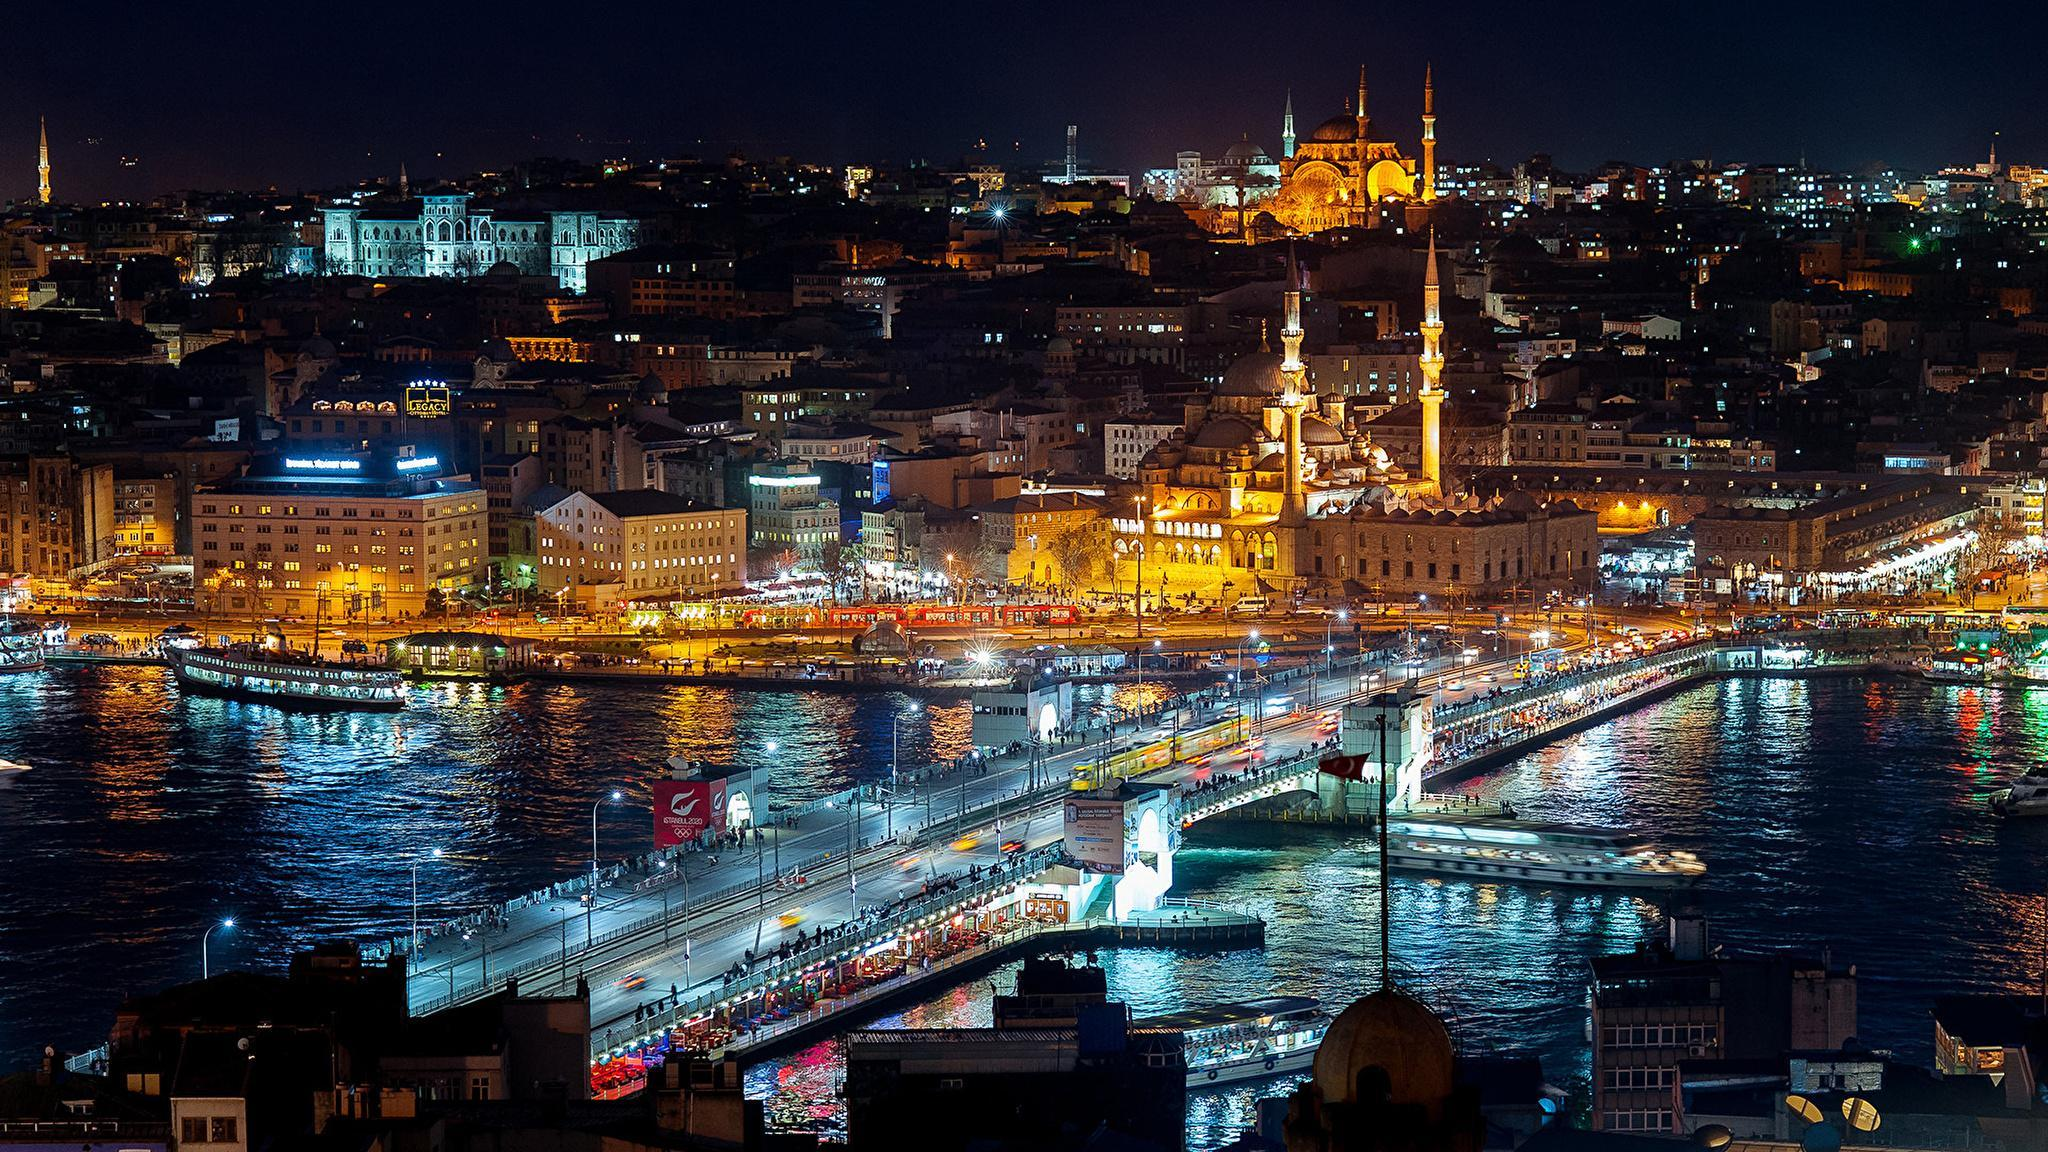 Istanbul Wallpaper Pictures 4k Hd Free Wallpapers For